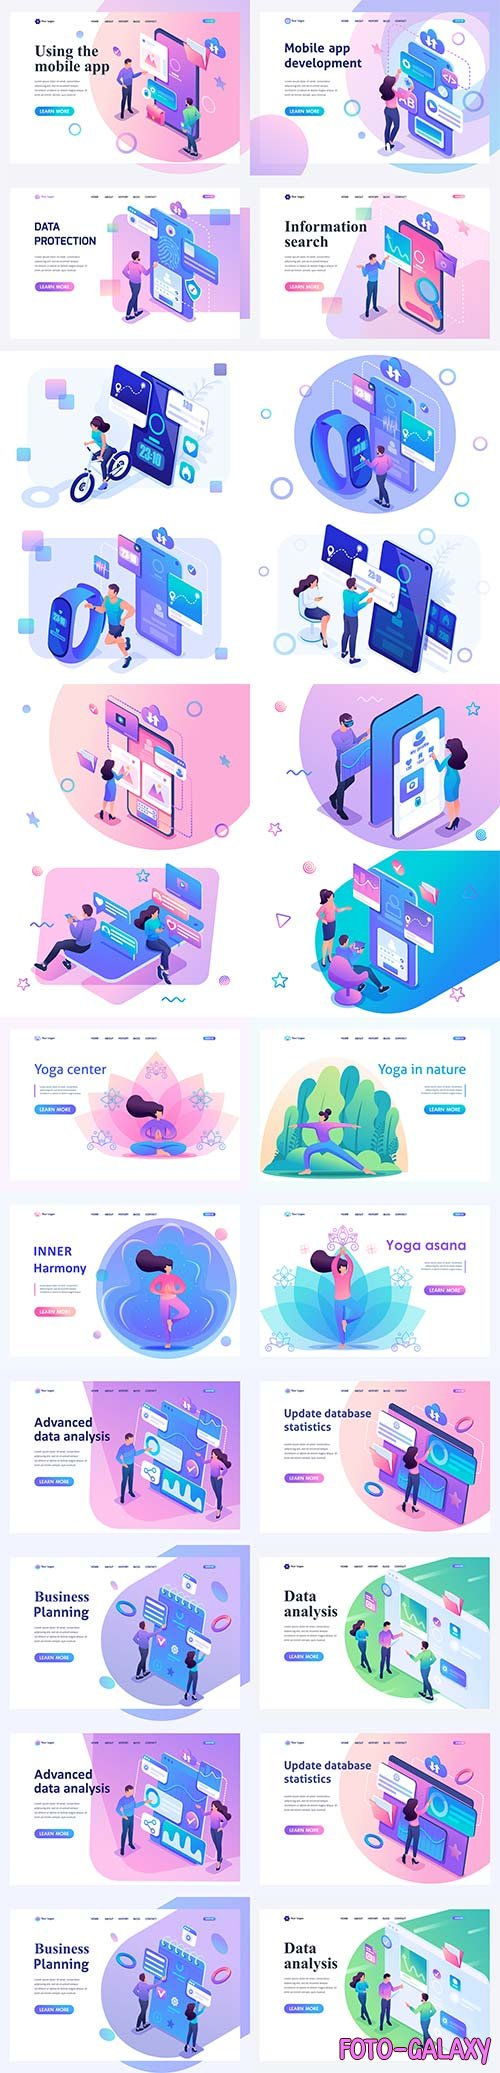 Flat isometric vector 3D concept illustration # 5